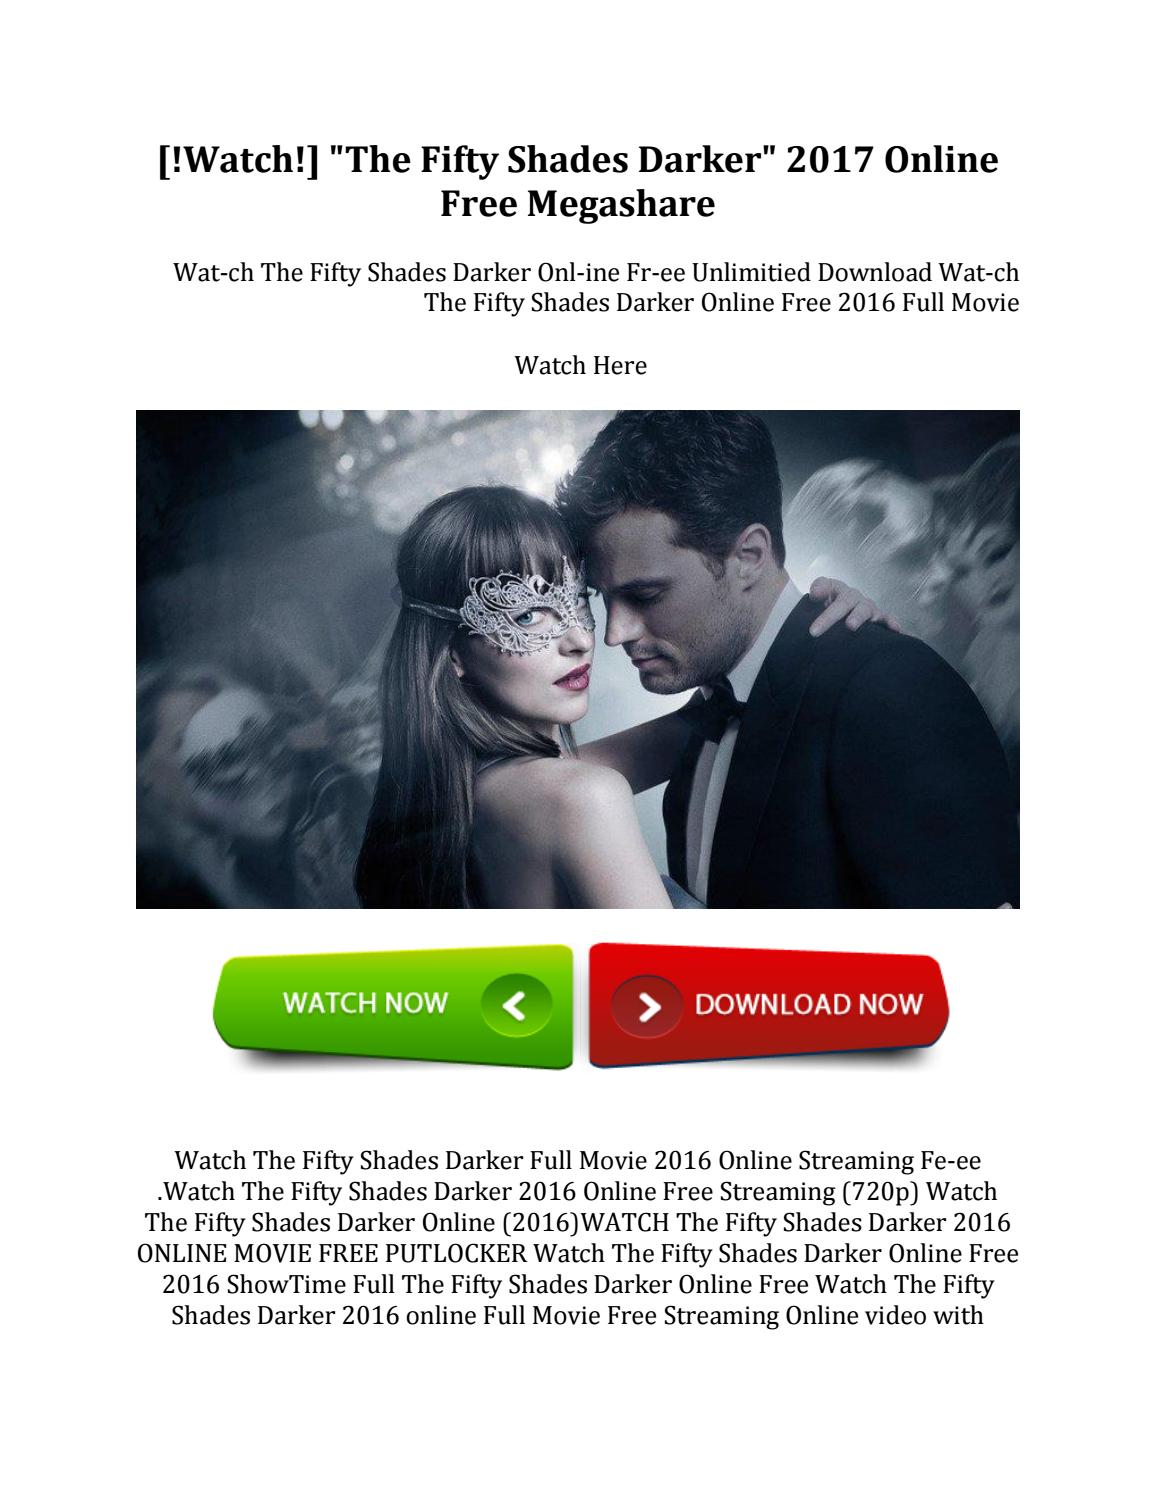 fifty shades darker full movie free online streaming putlockers